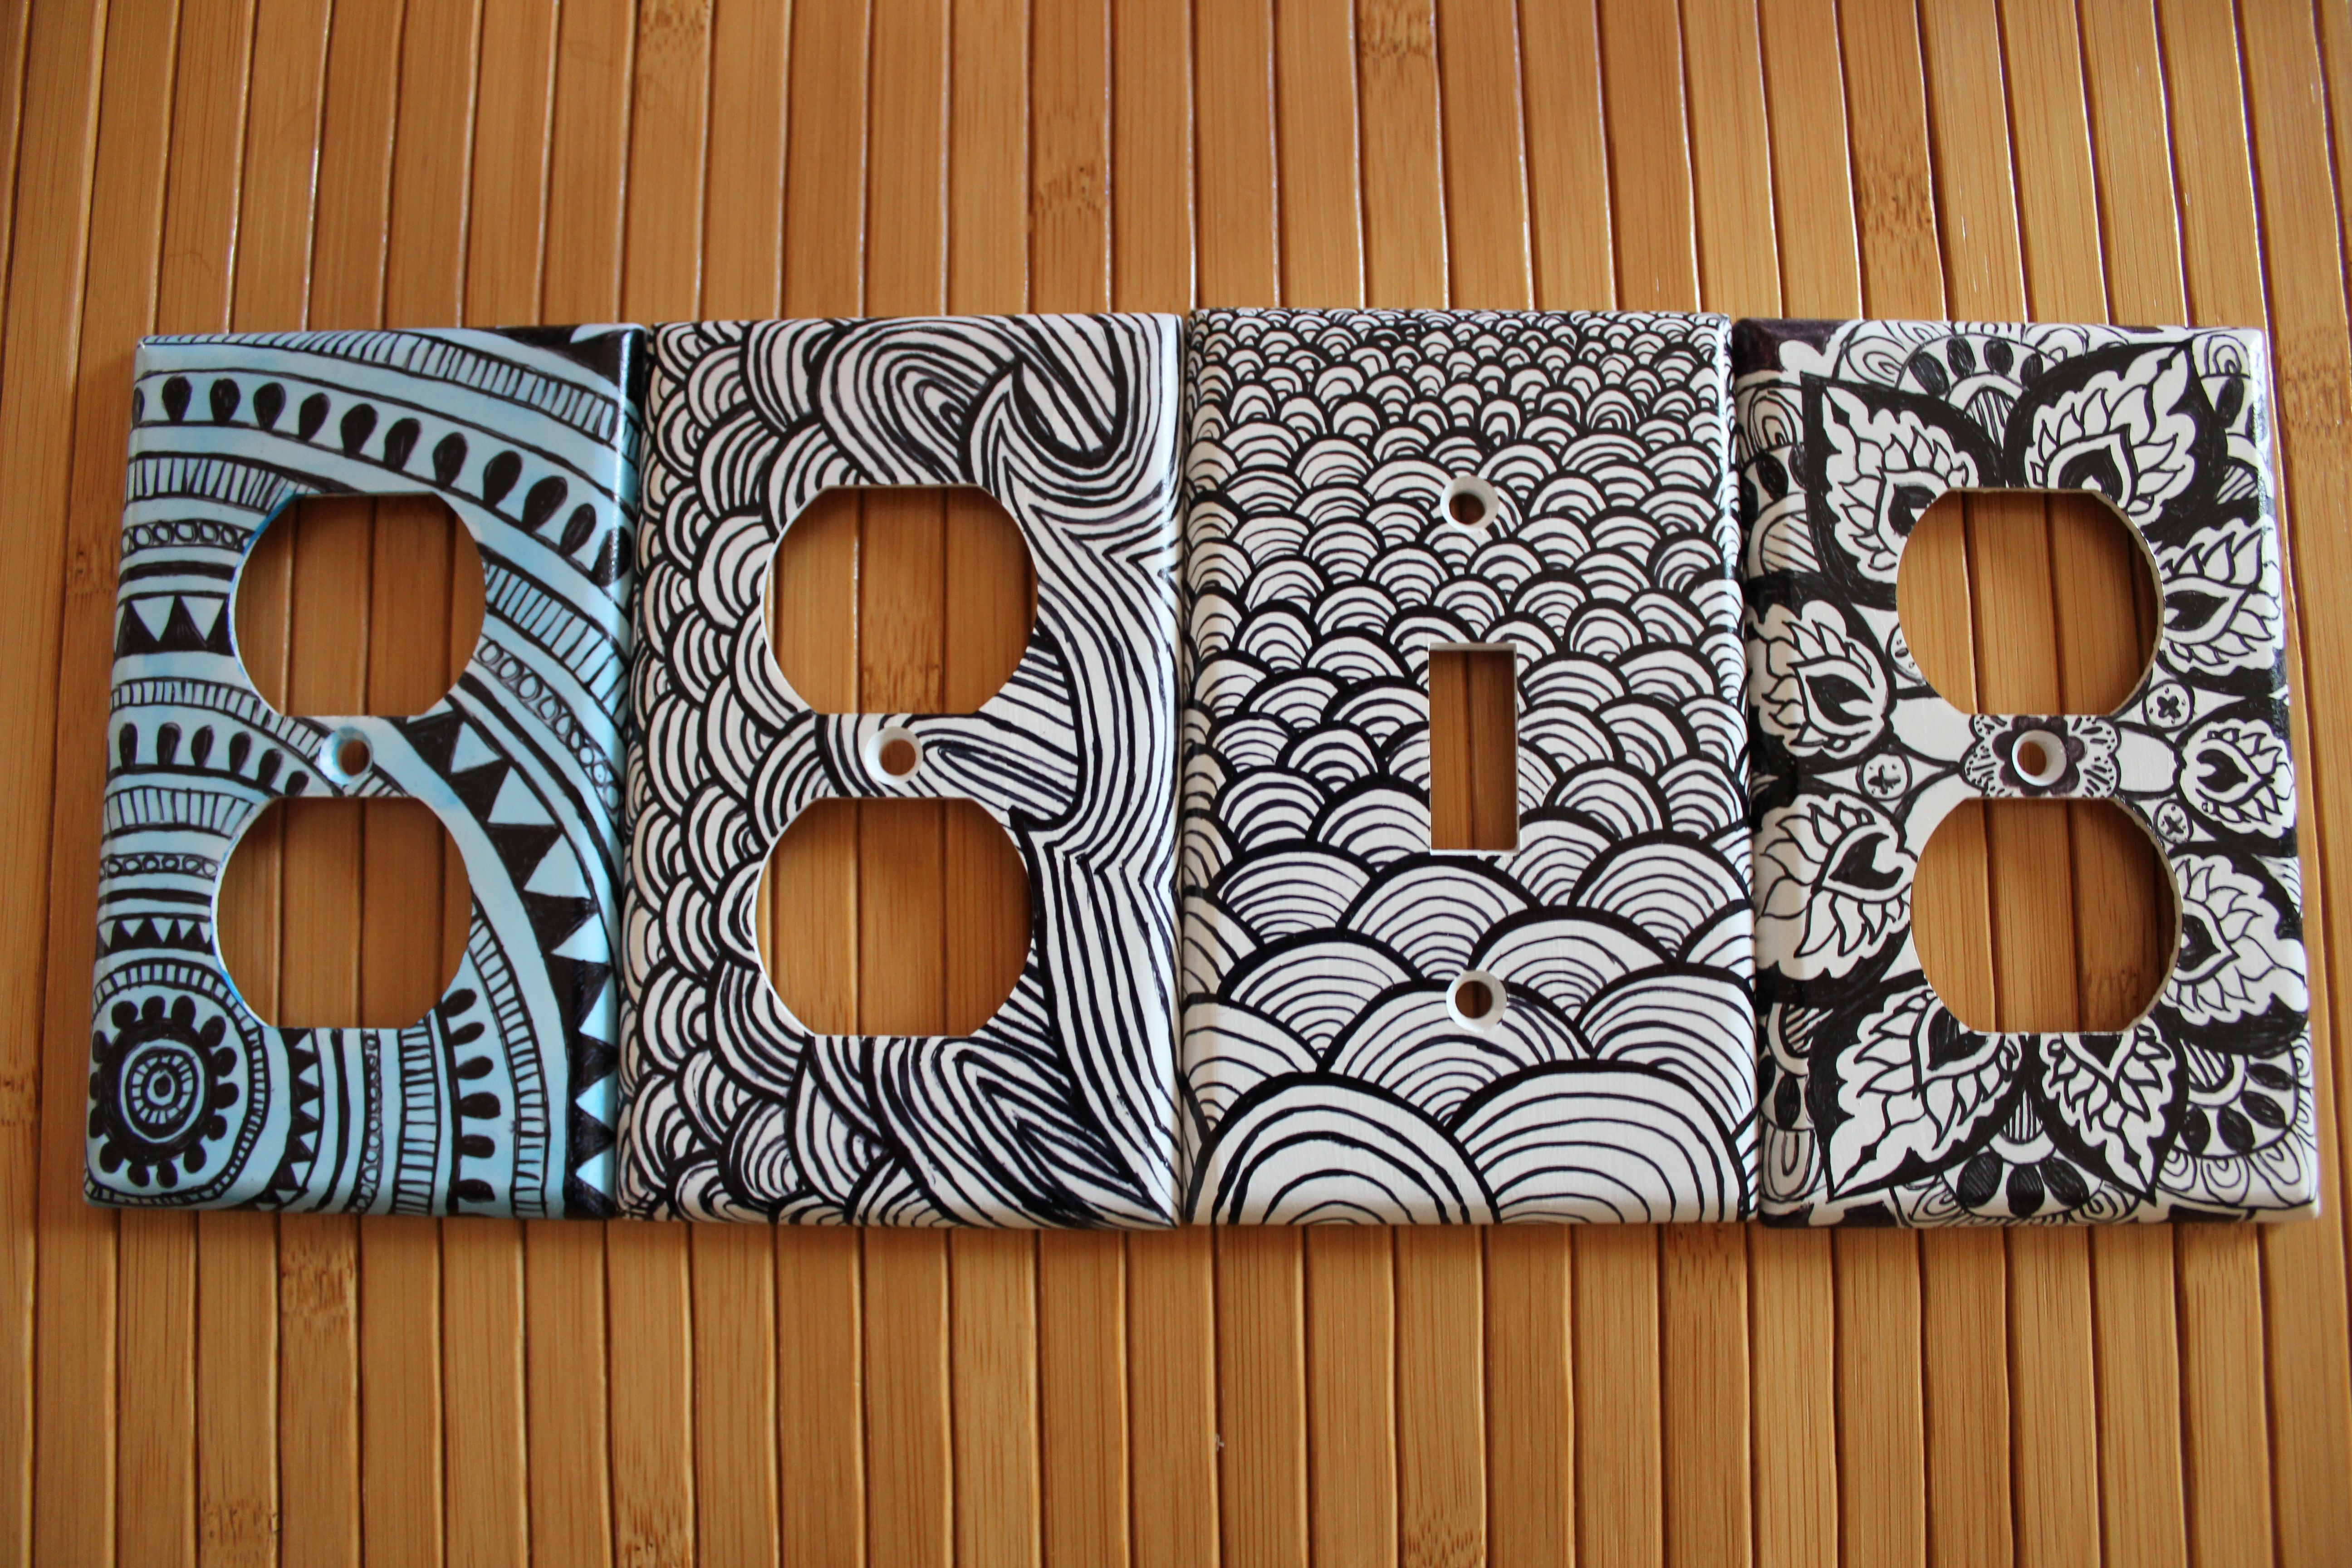 Custom Light Switch And Outlet Covers With Sharpie Sharpie Crafts Sharpie Art Light Switch Covers